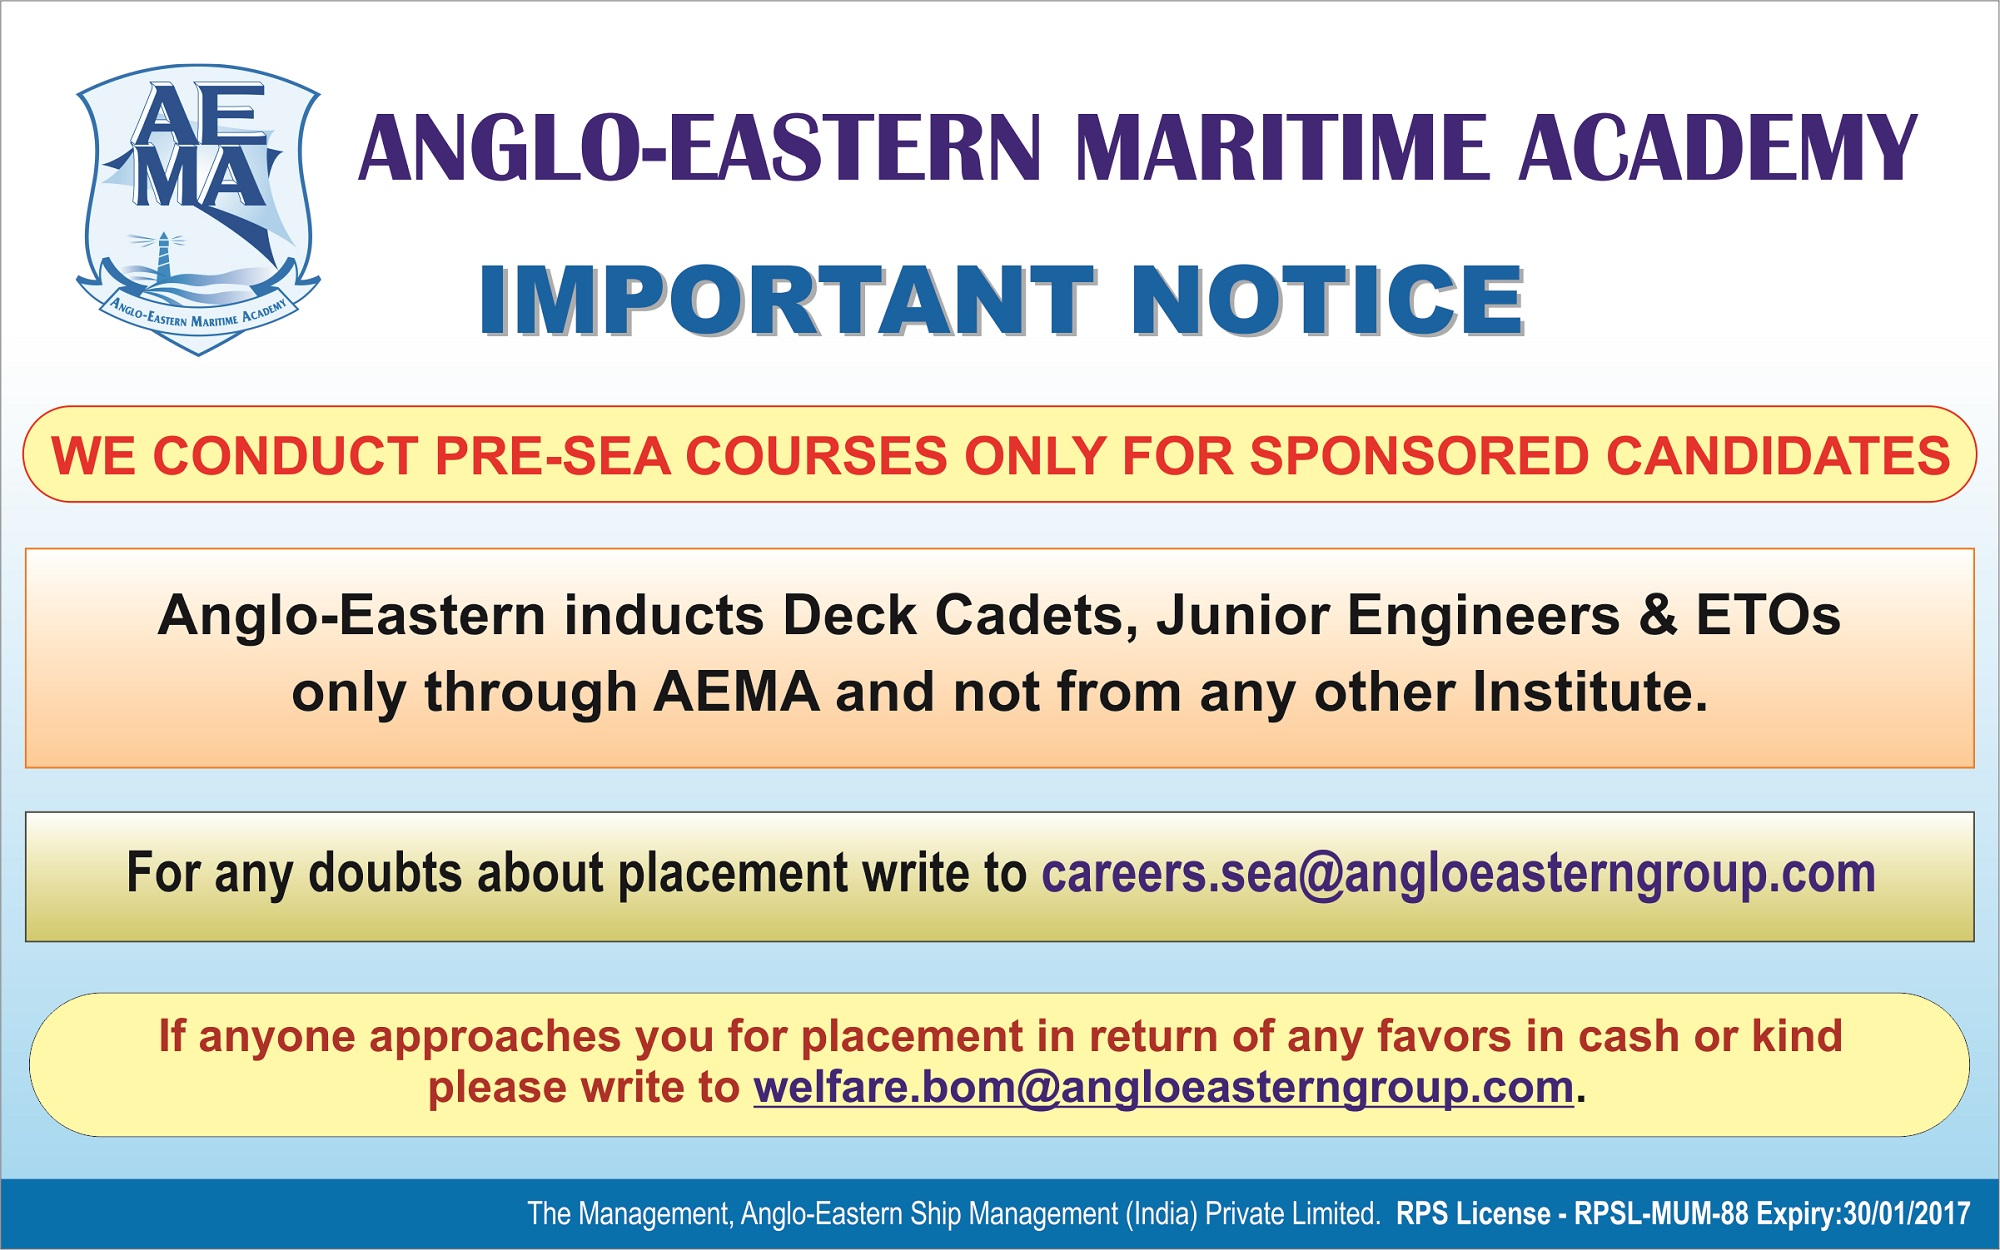 Anglo Eastern Maritime Academy Admission Notification for 2019 Batches